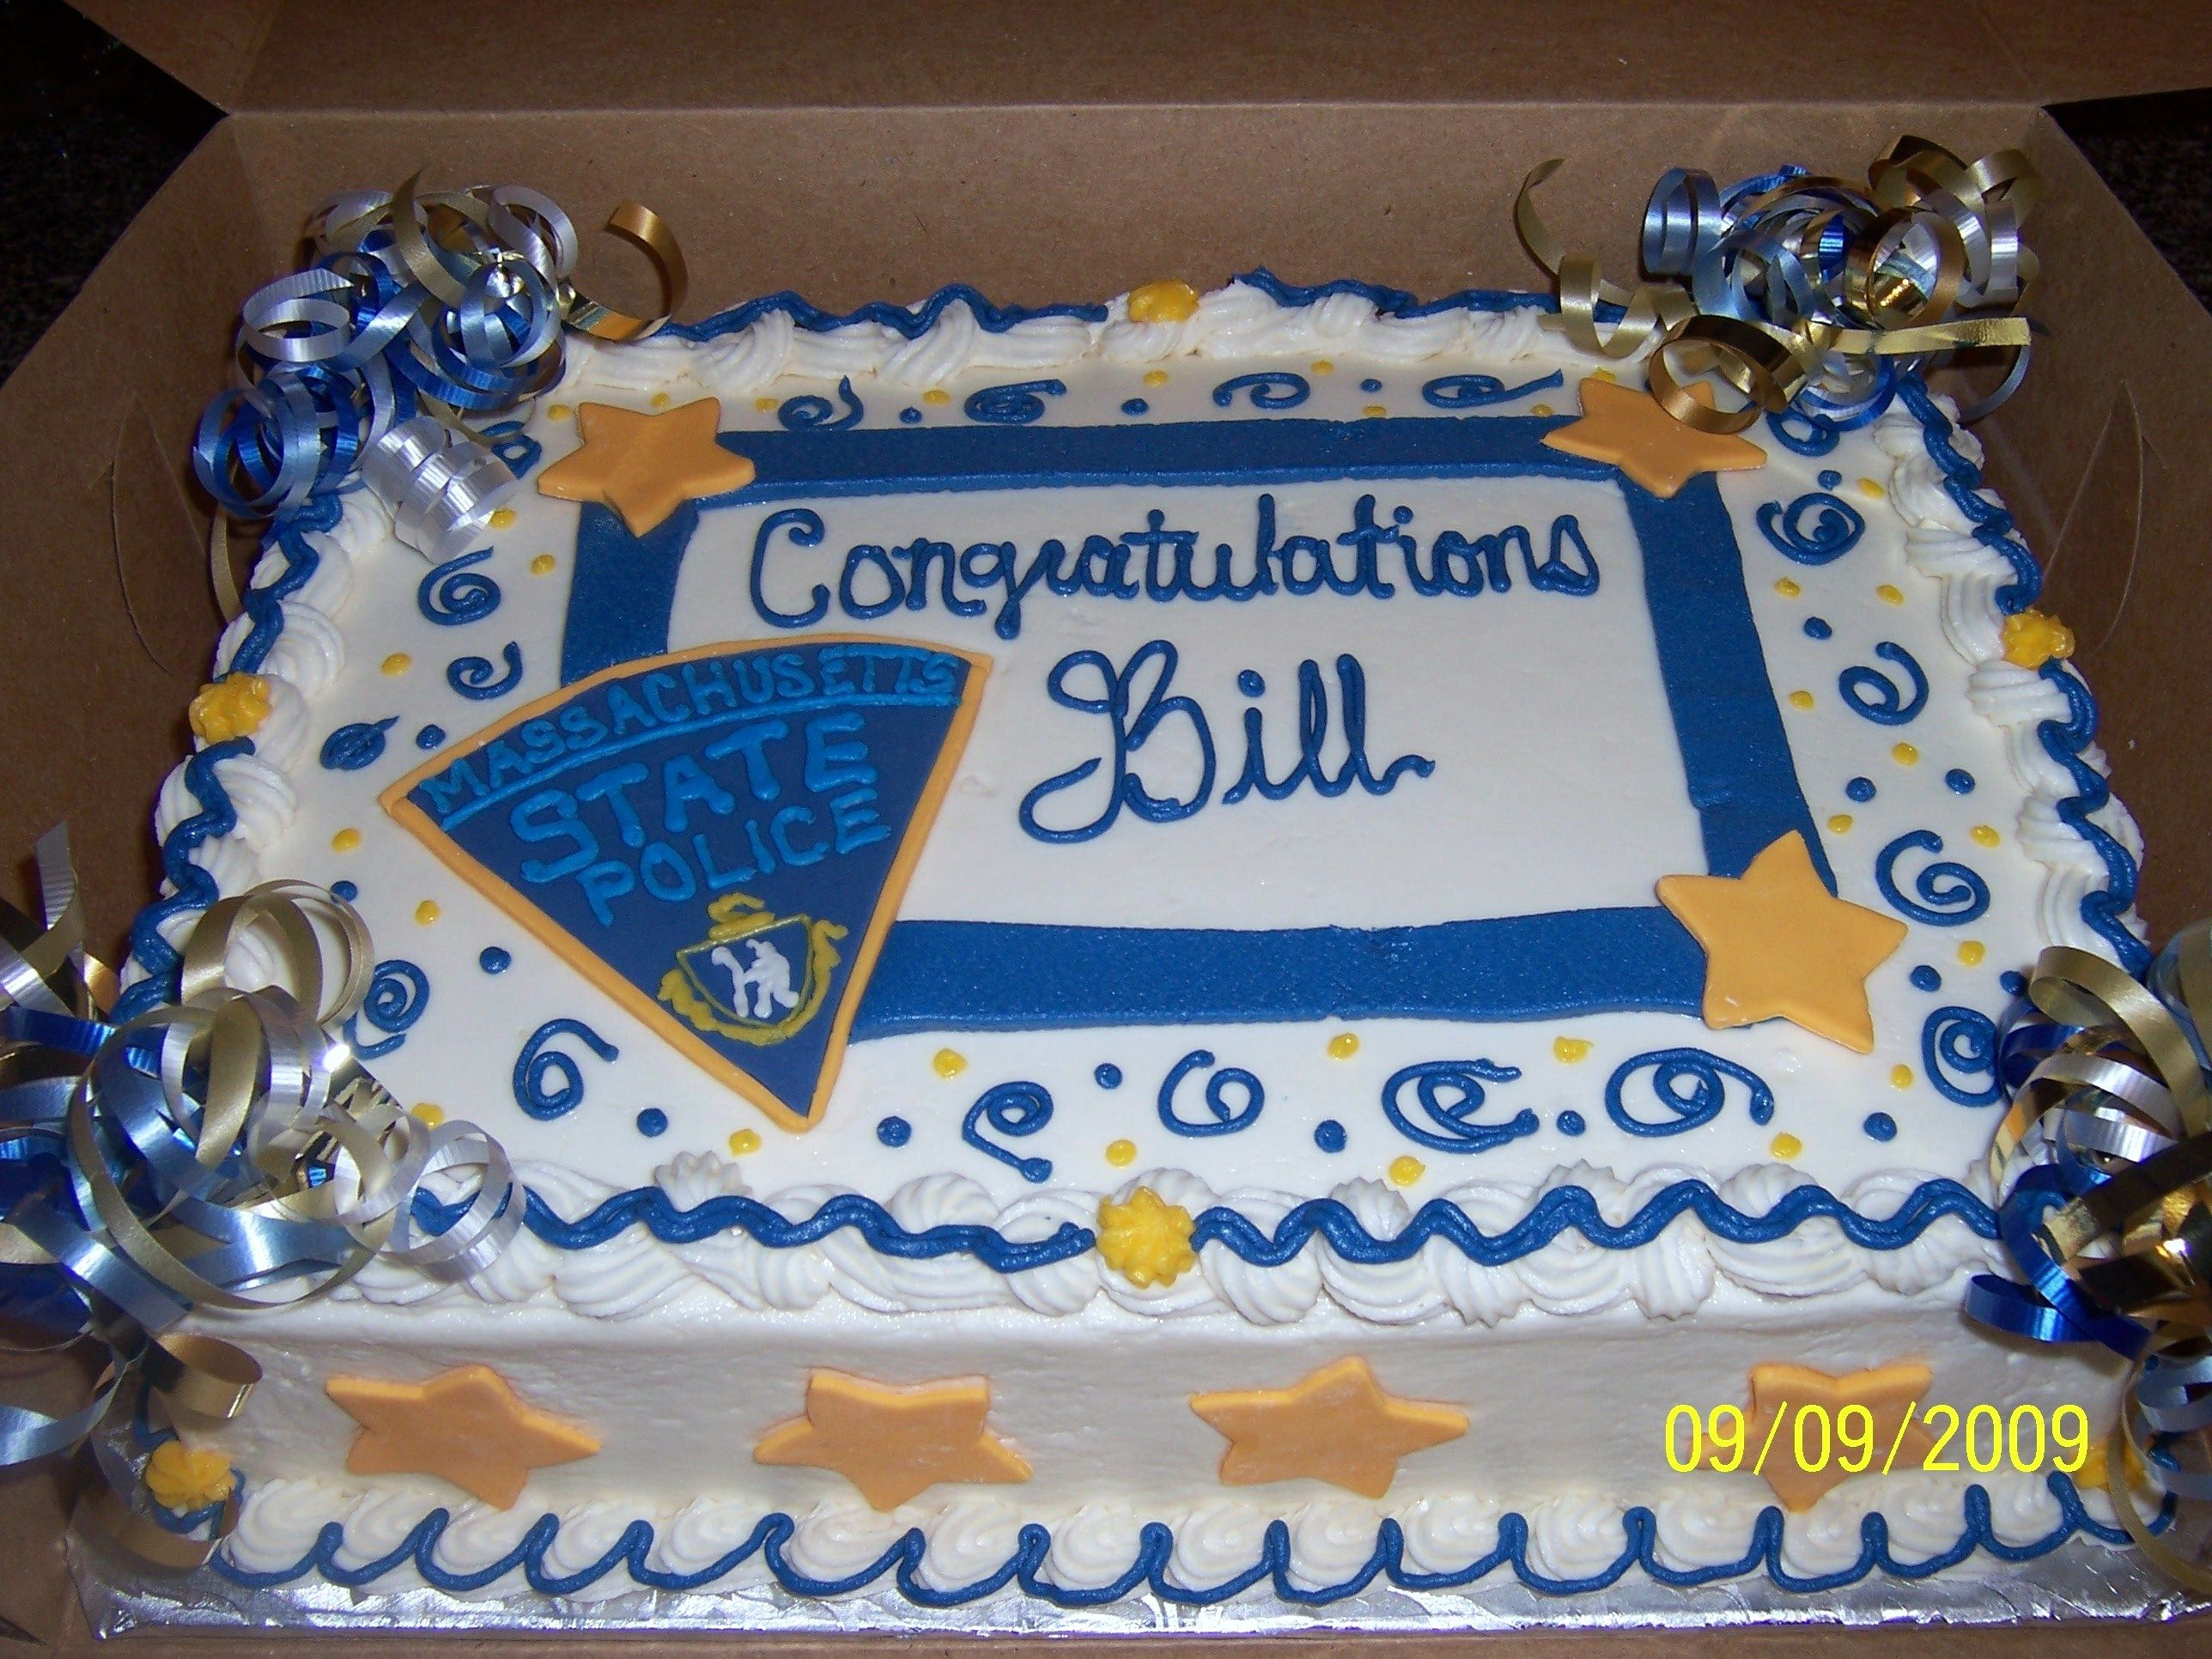 Police Retirement Cake Images : State Police Retirement Cake Sheriff Election Cake Ideas ...